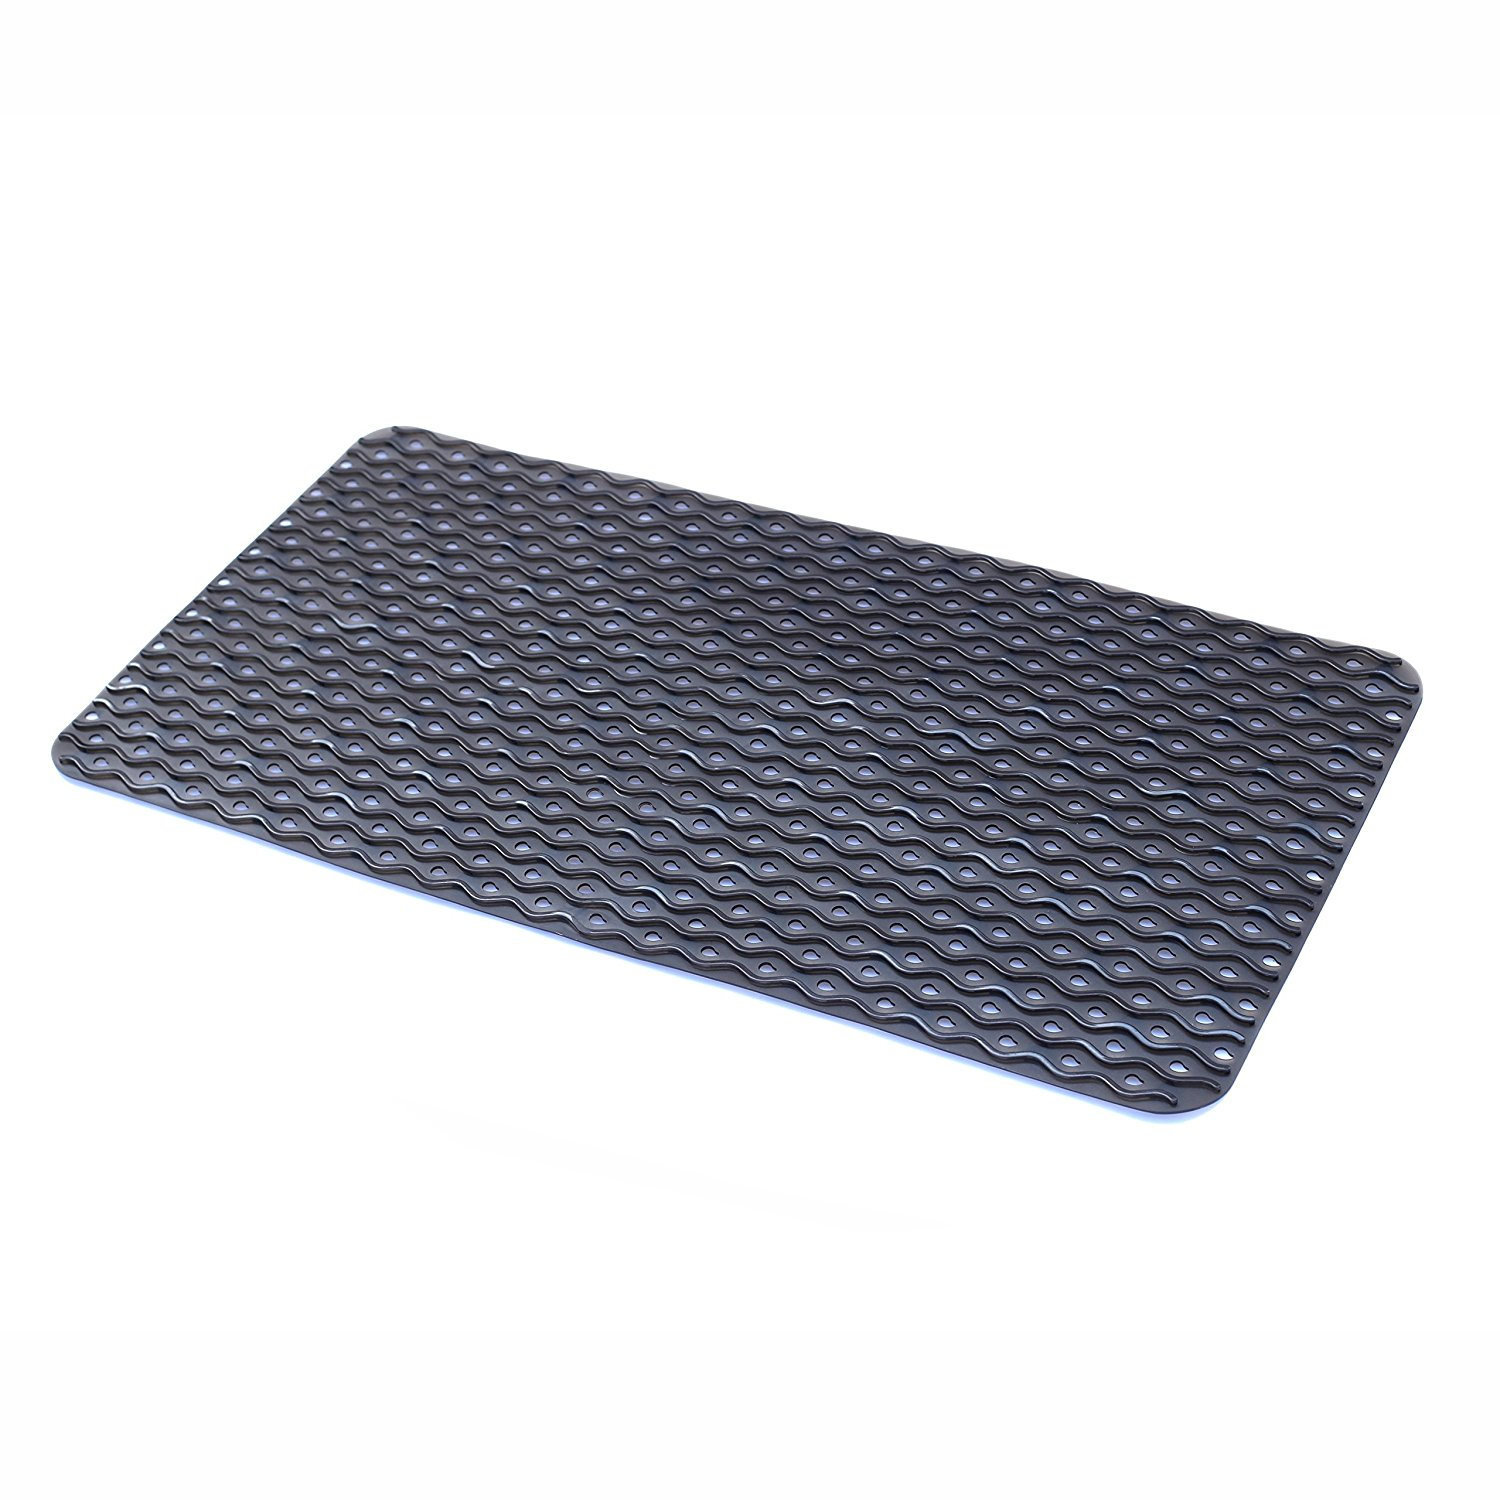 mats simple buying luxury toilet bathroom floor bath guide reviews hotel shower best mat tub spa with